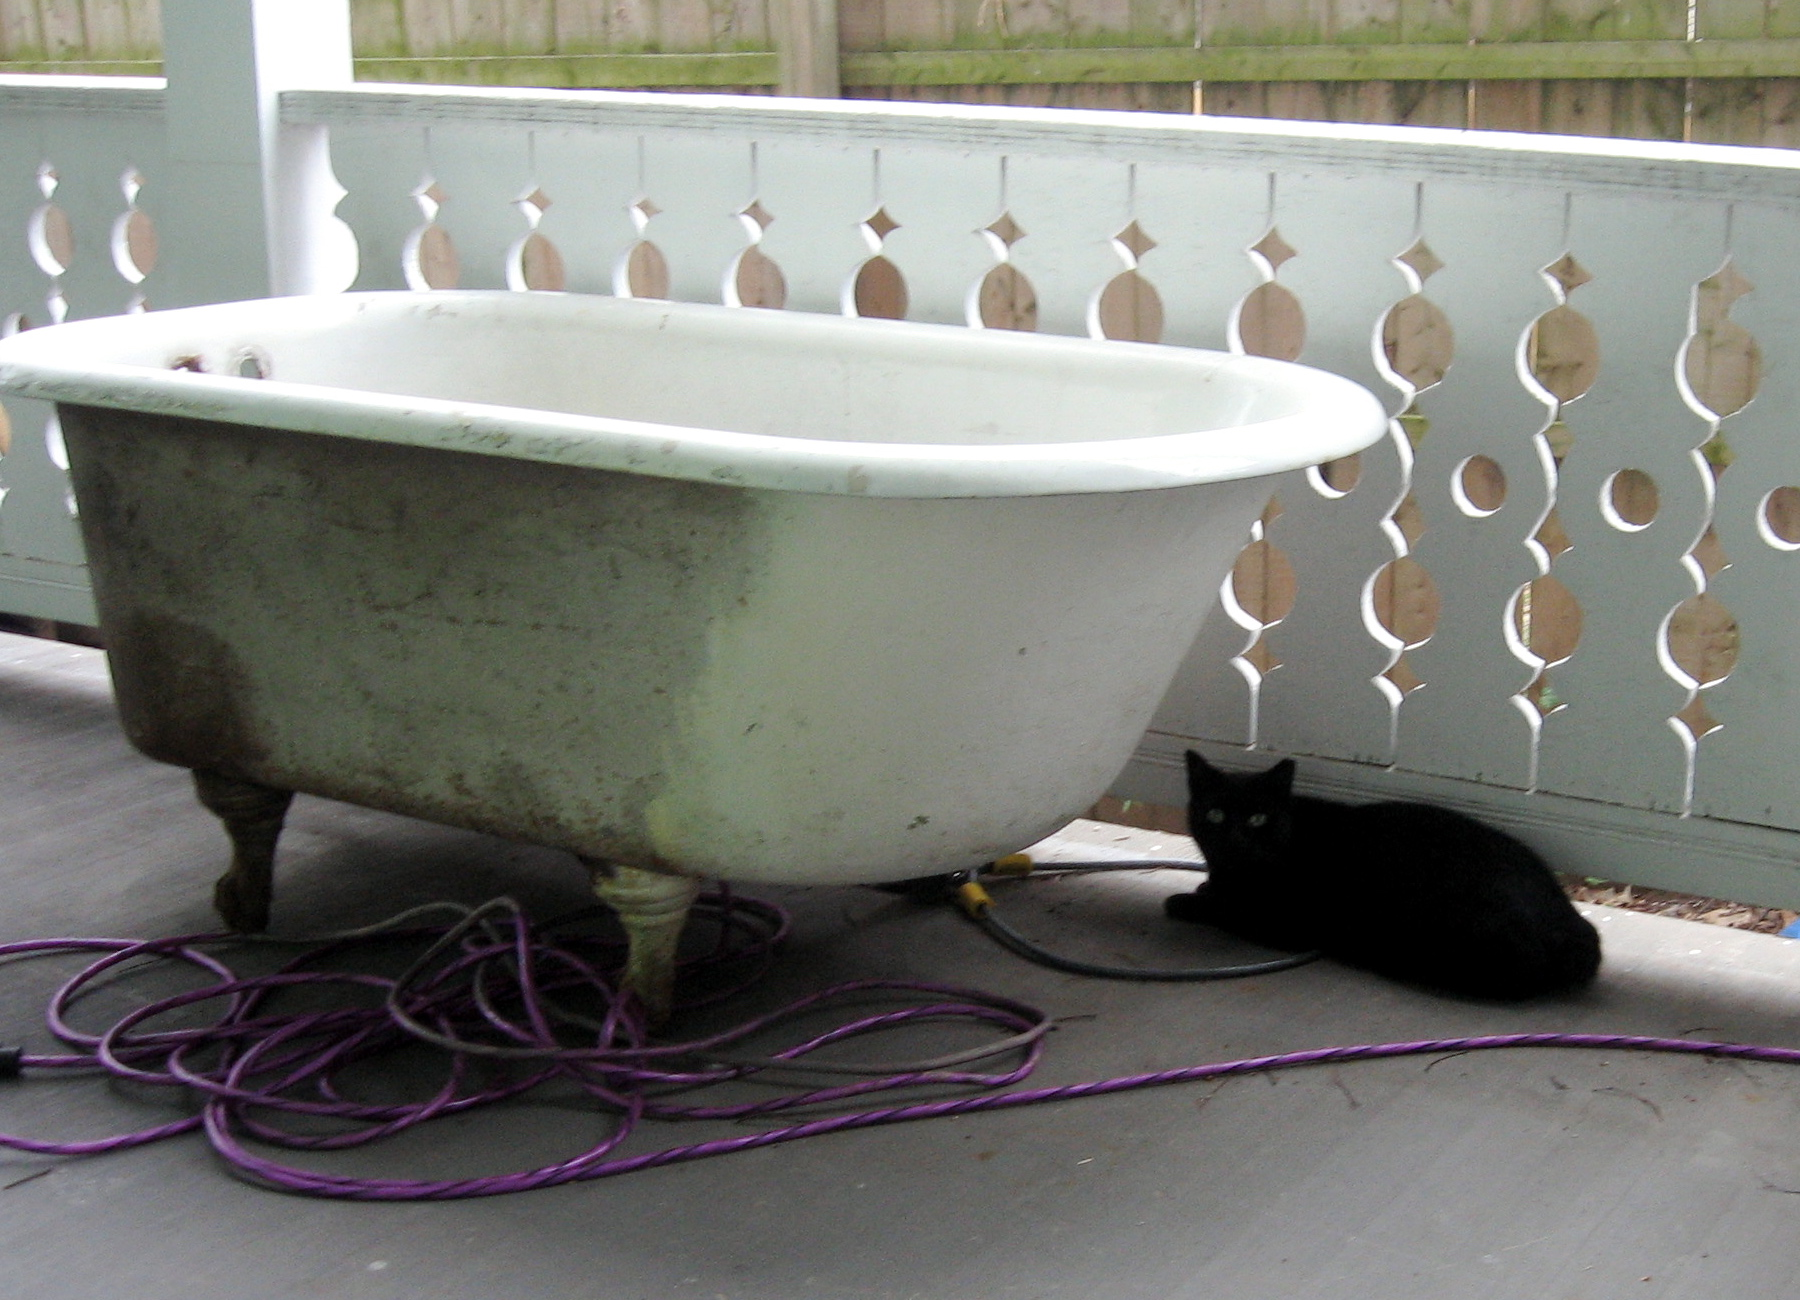 Recommend someone to refurbish an old claw foot bathtub? - Church ...